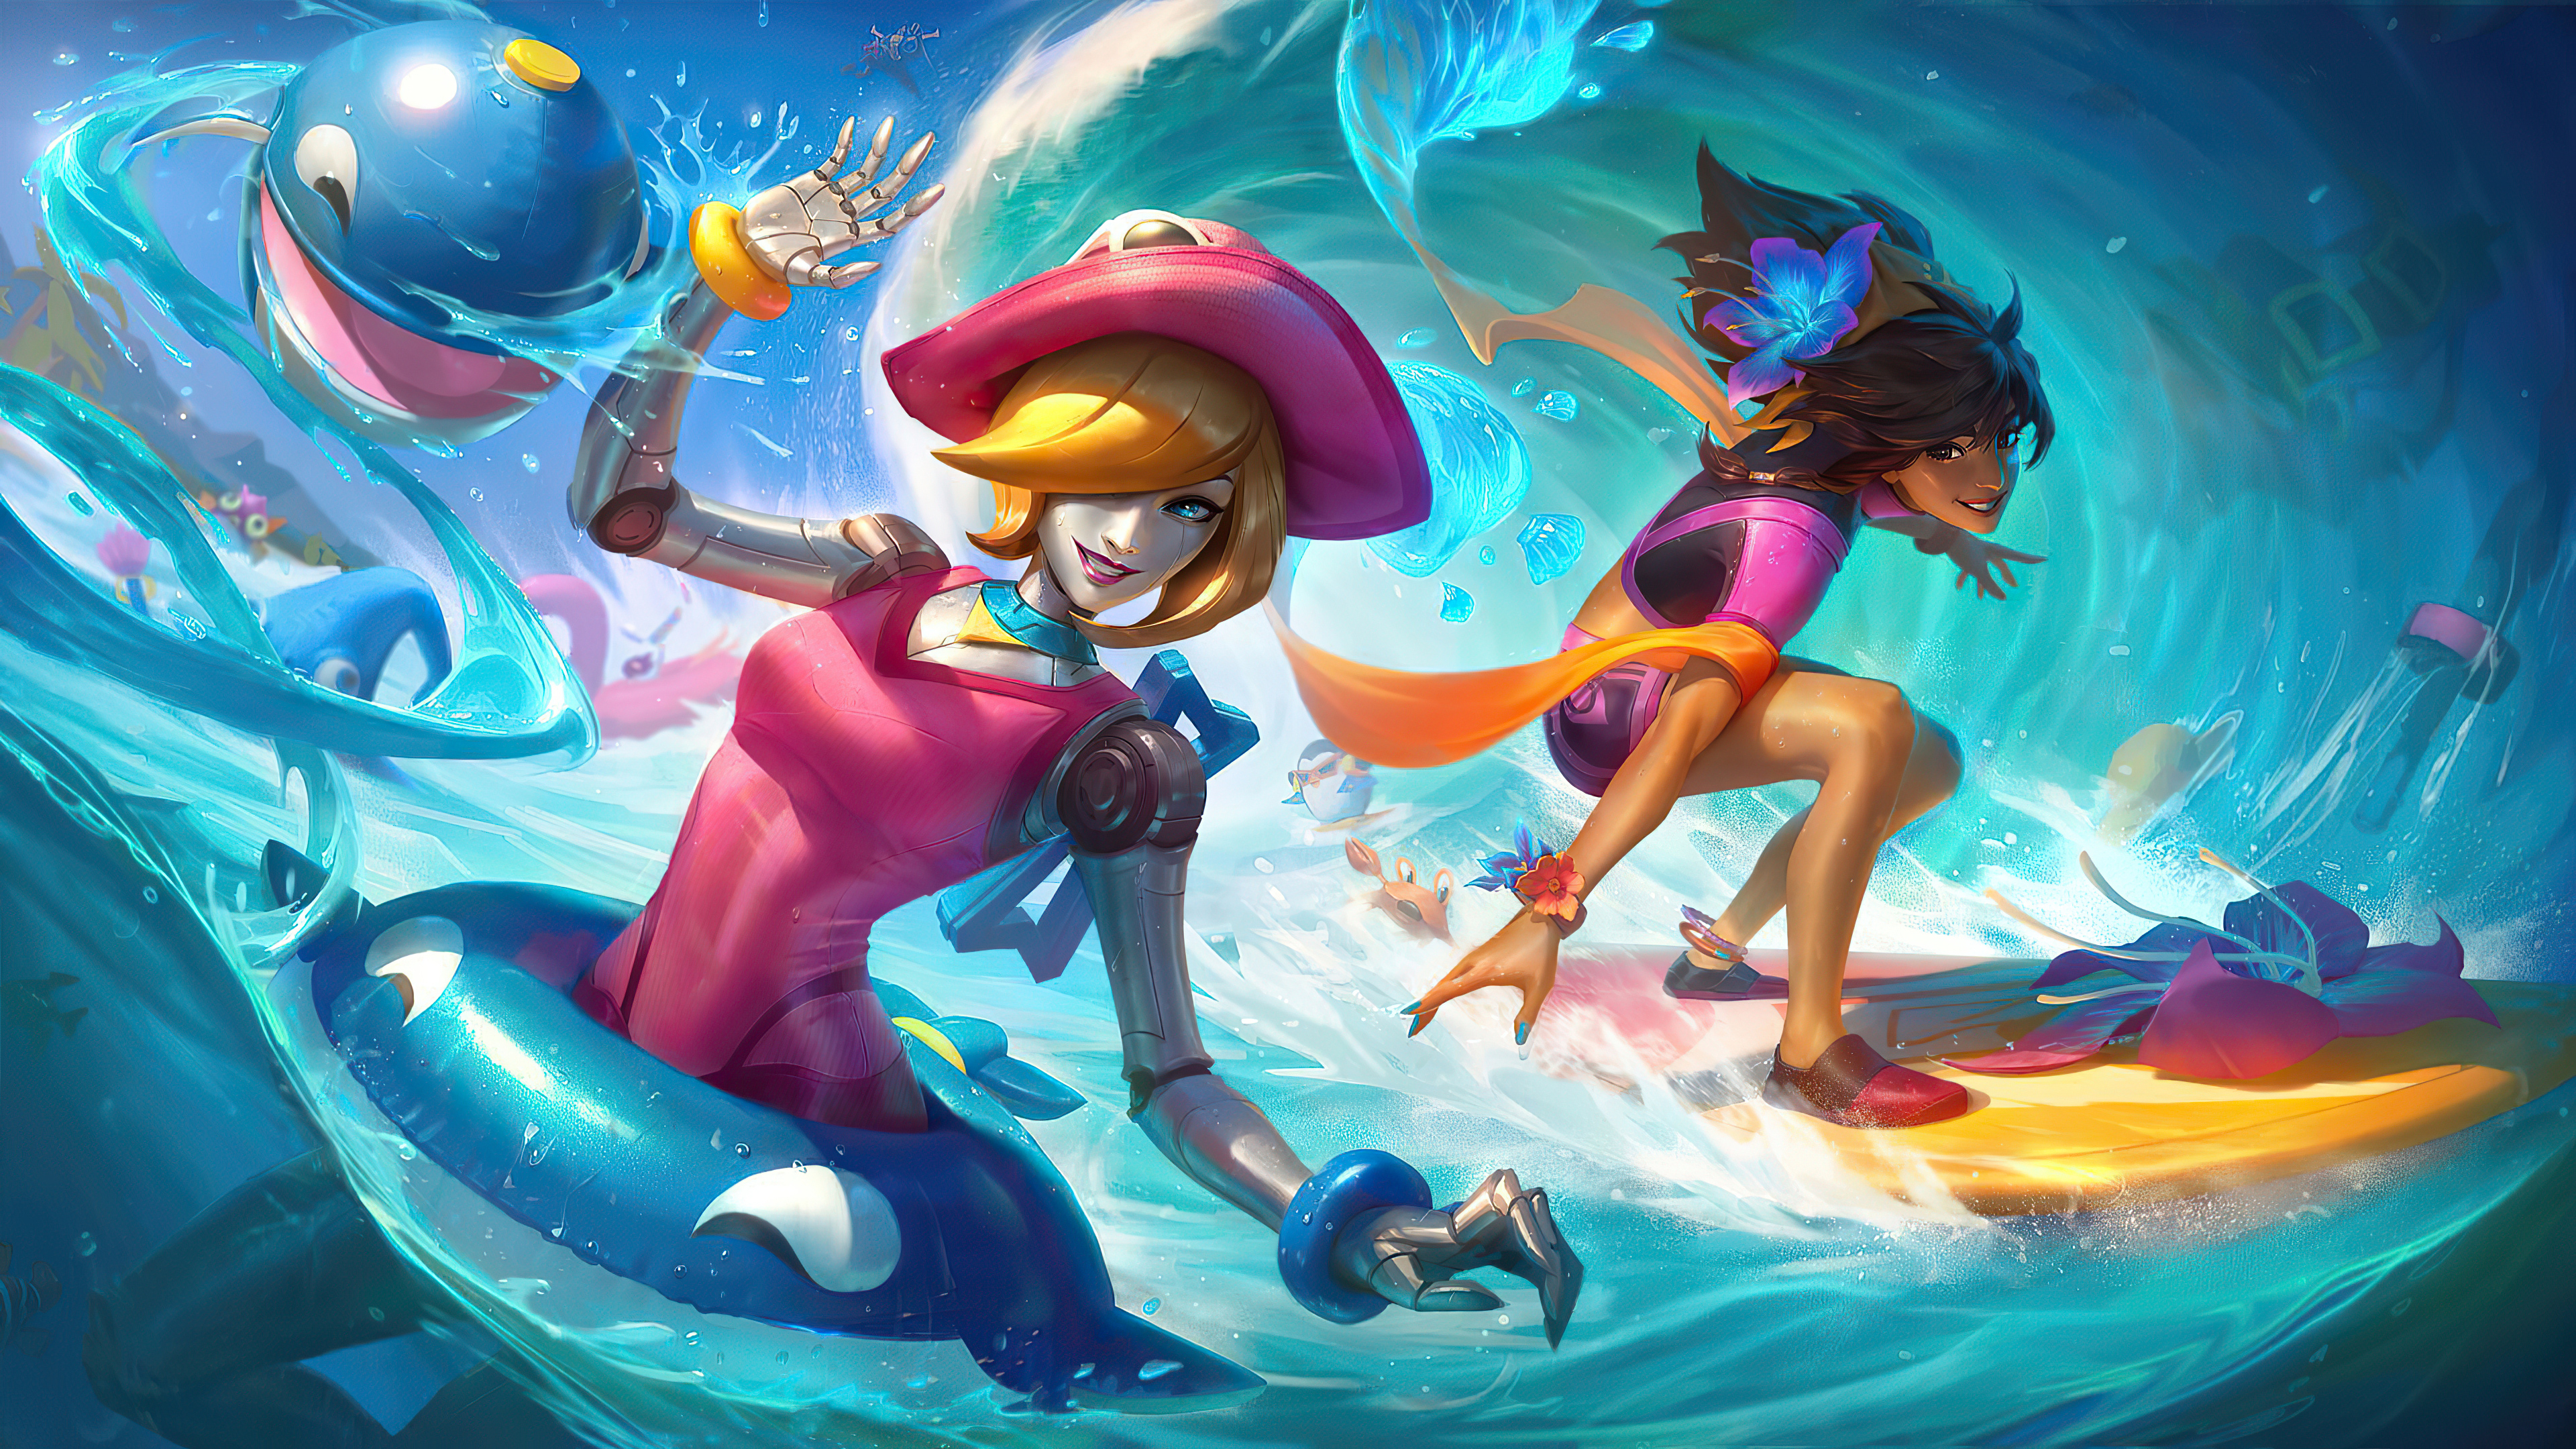 pool party orianna and taliyah 4k 1598657314 - Pool Party Orianna And Taliyah 4k - Pool Party Orianna And Taliyah wallpapers, Pool Party Orianna 4k wallpapers